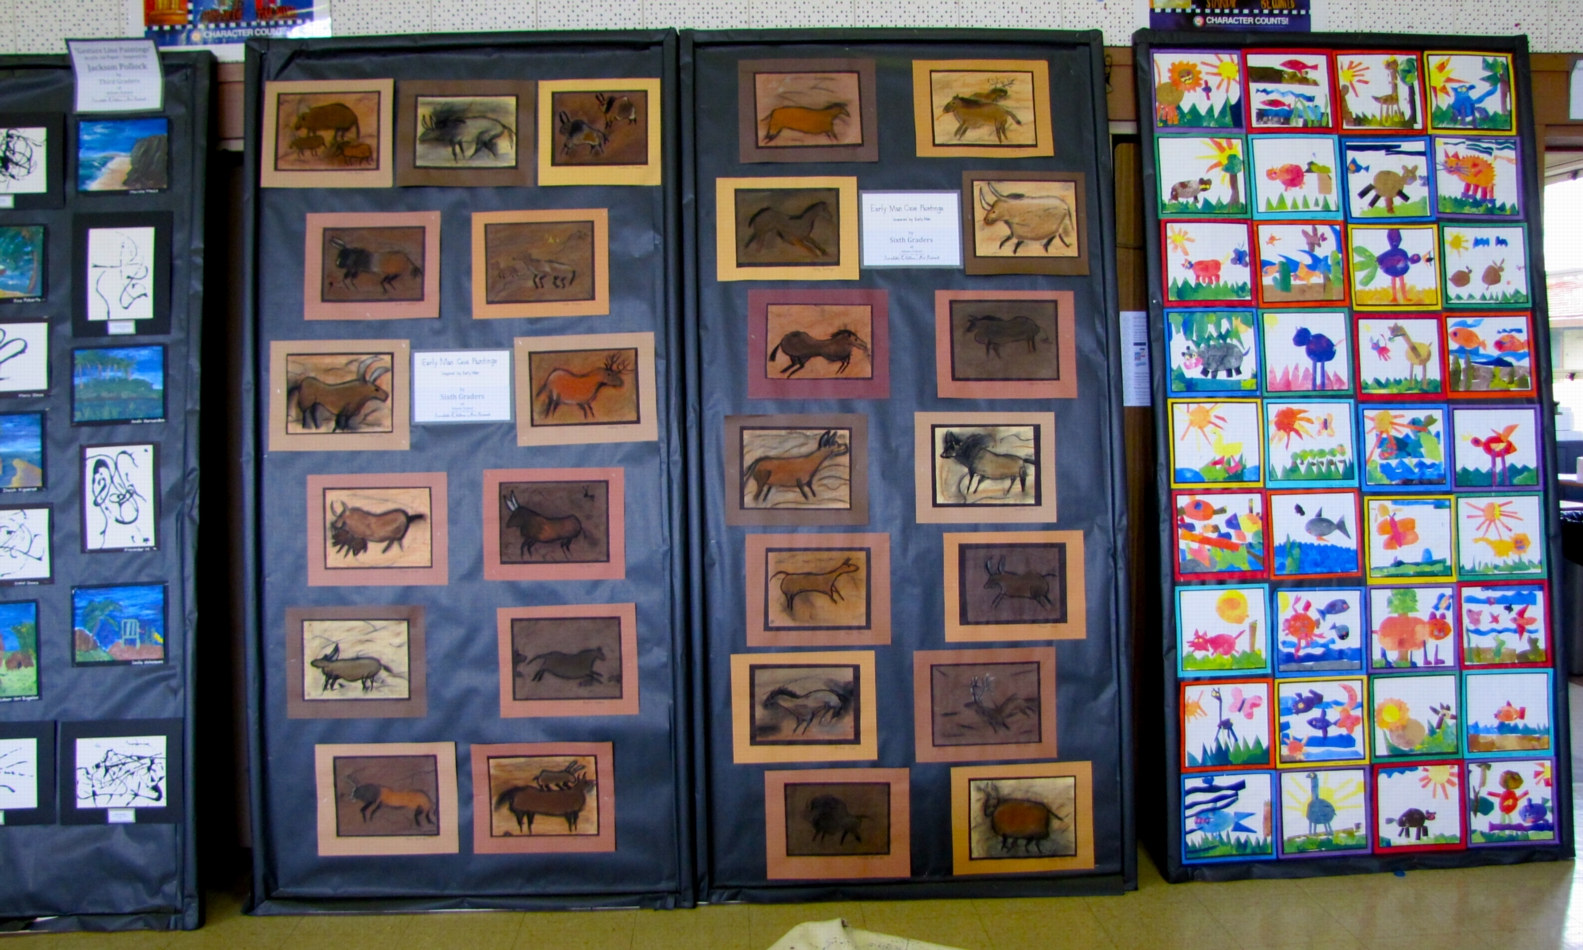 Adams School Arts Festival 2011 - Gr 5 cave art and Gr. K Painted Paper Collage Paintings by Linnie (Victoria) Aikens Lindsay